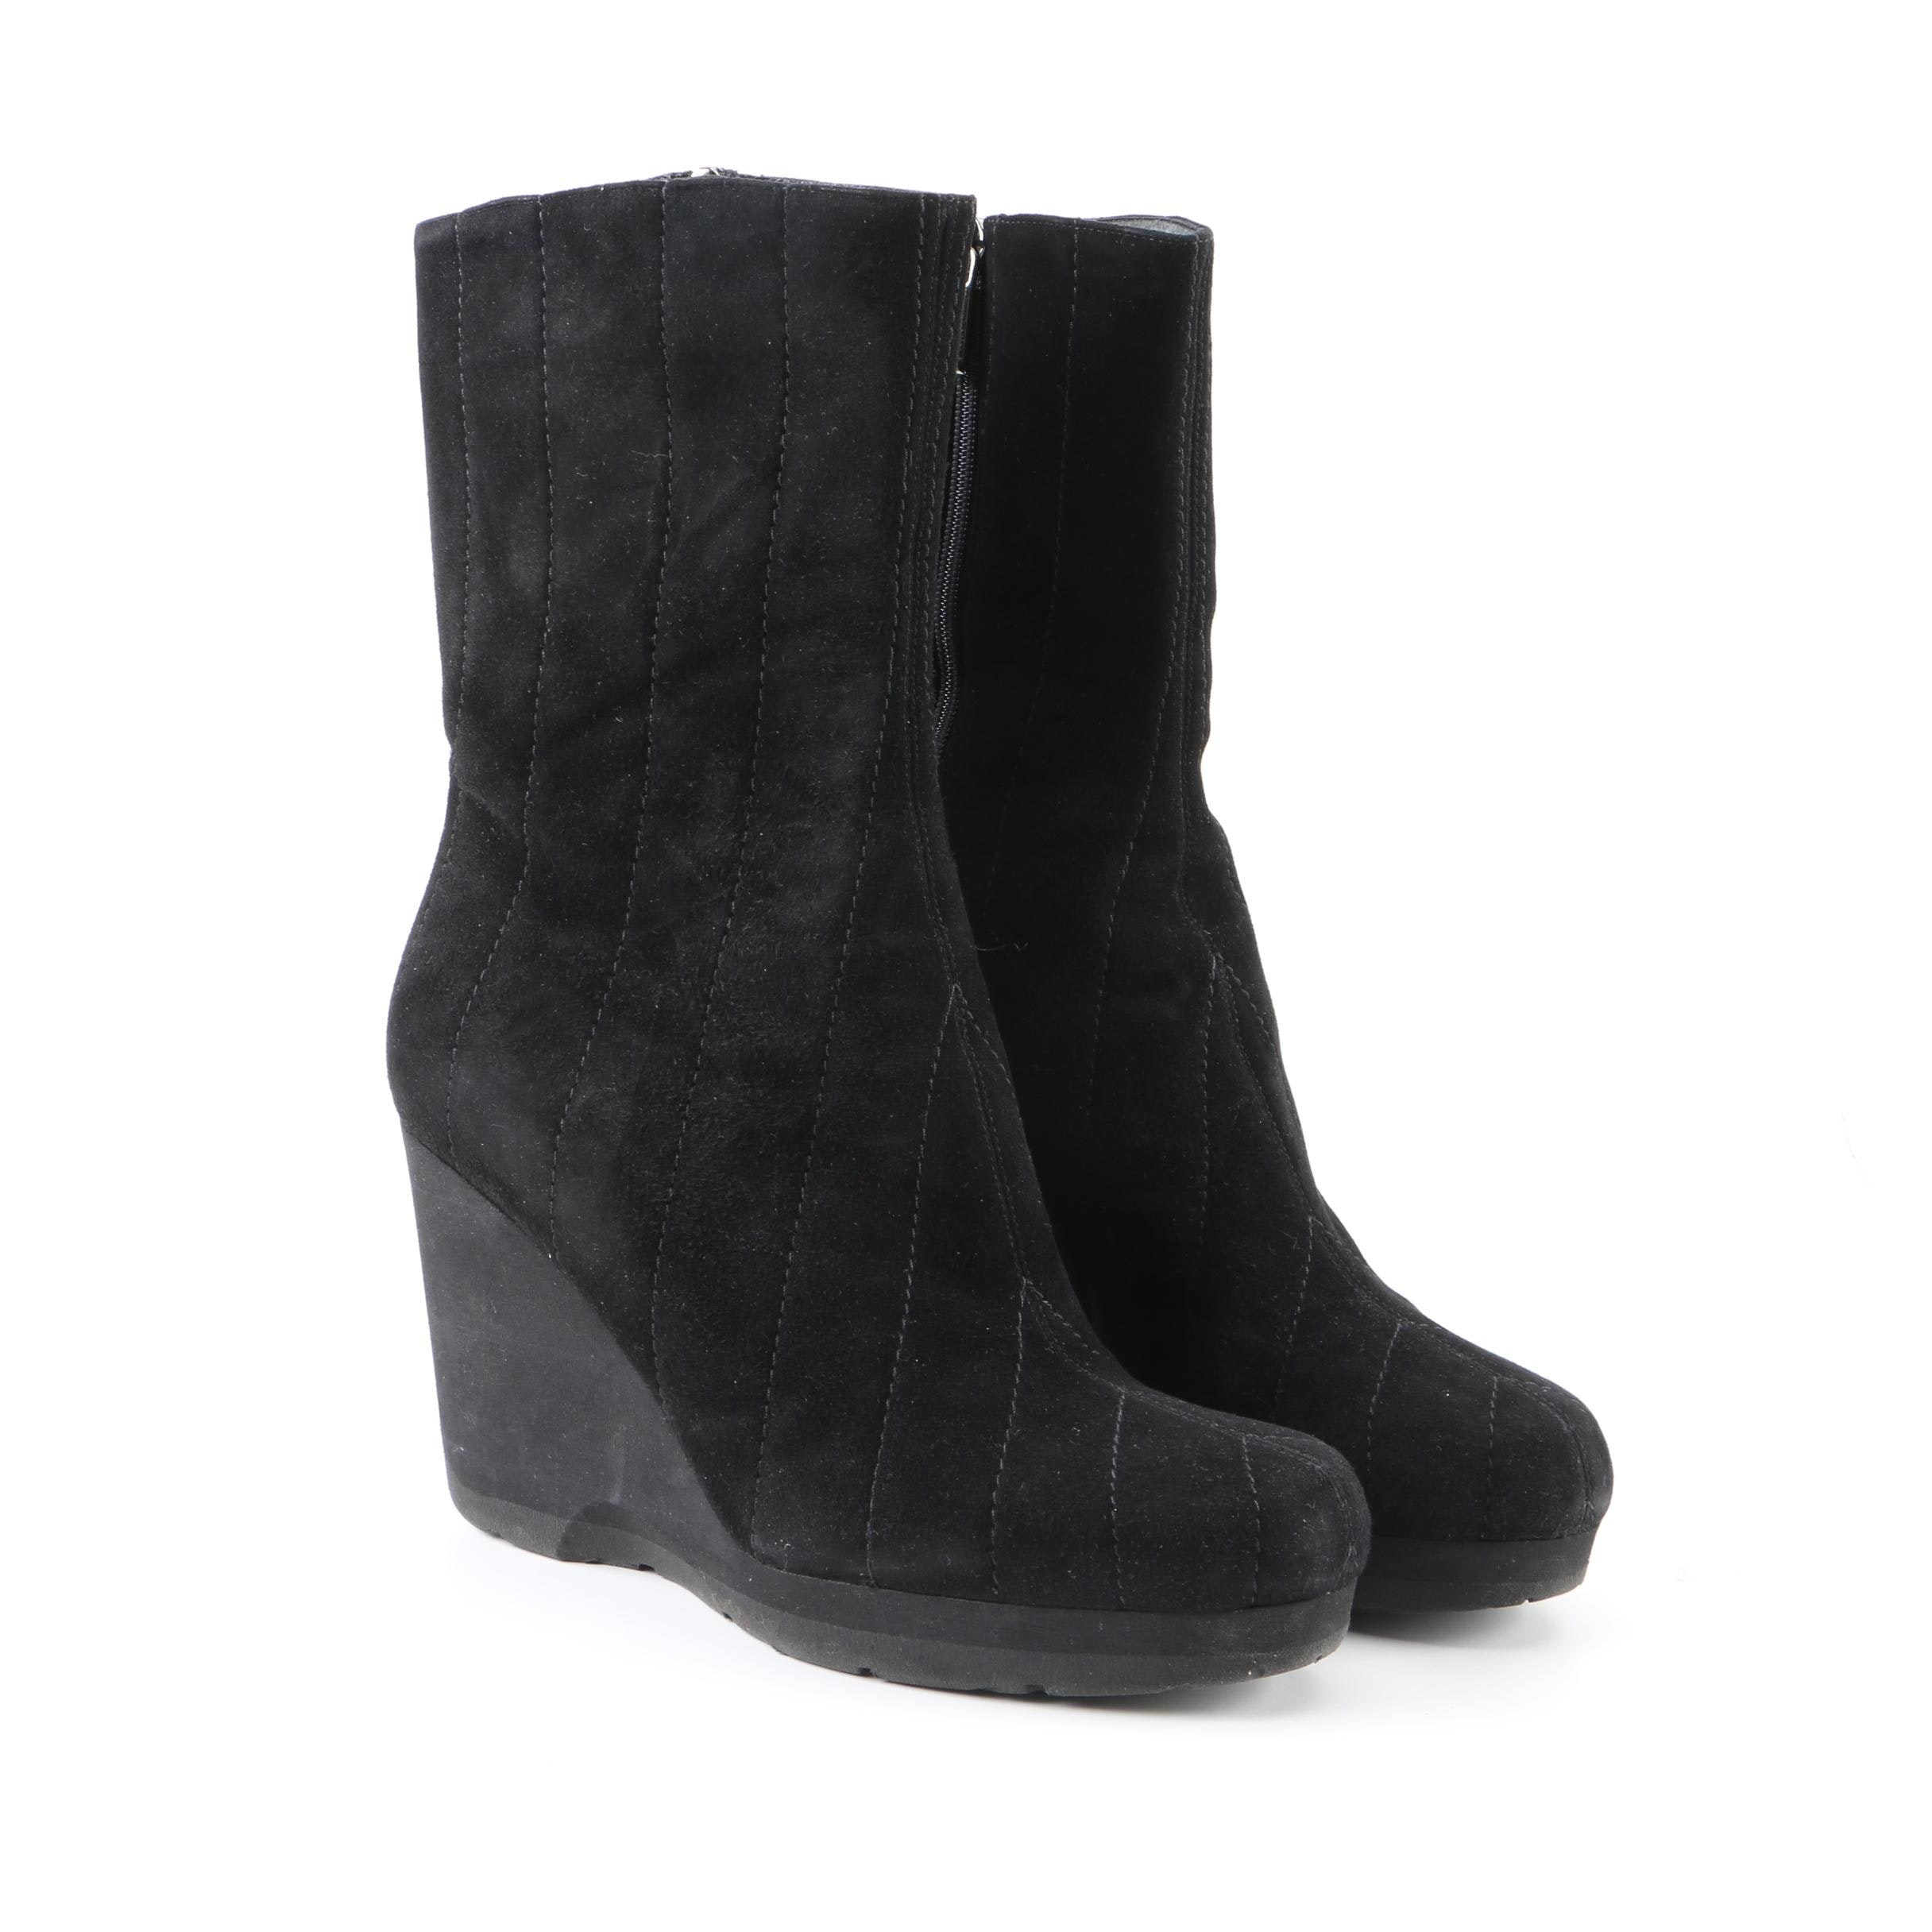 Women's Thierry Rabotin Black Suede Wedge Boots